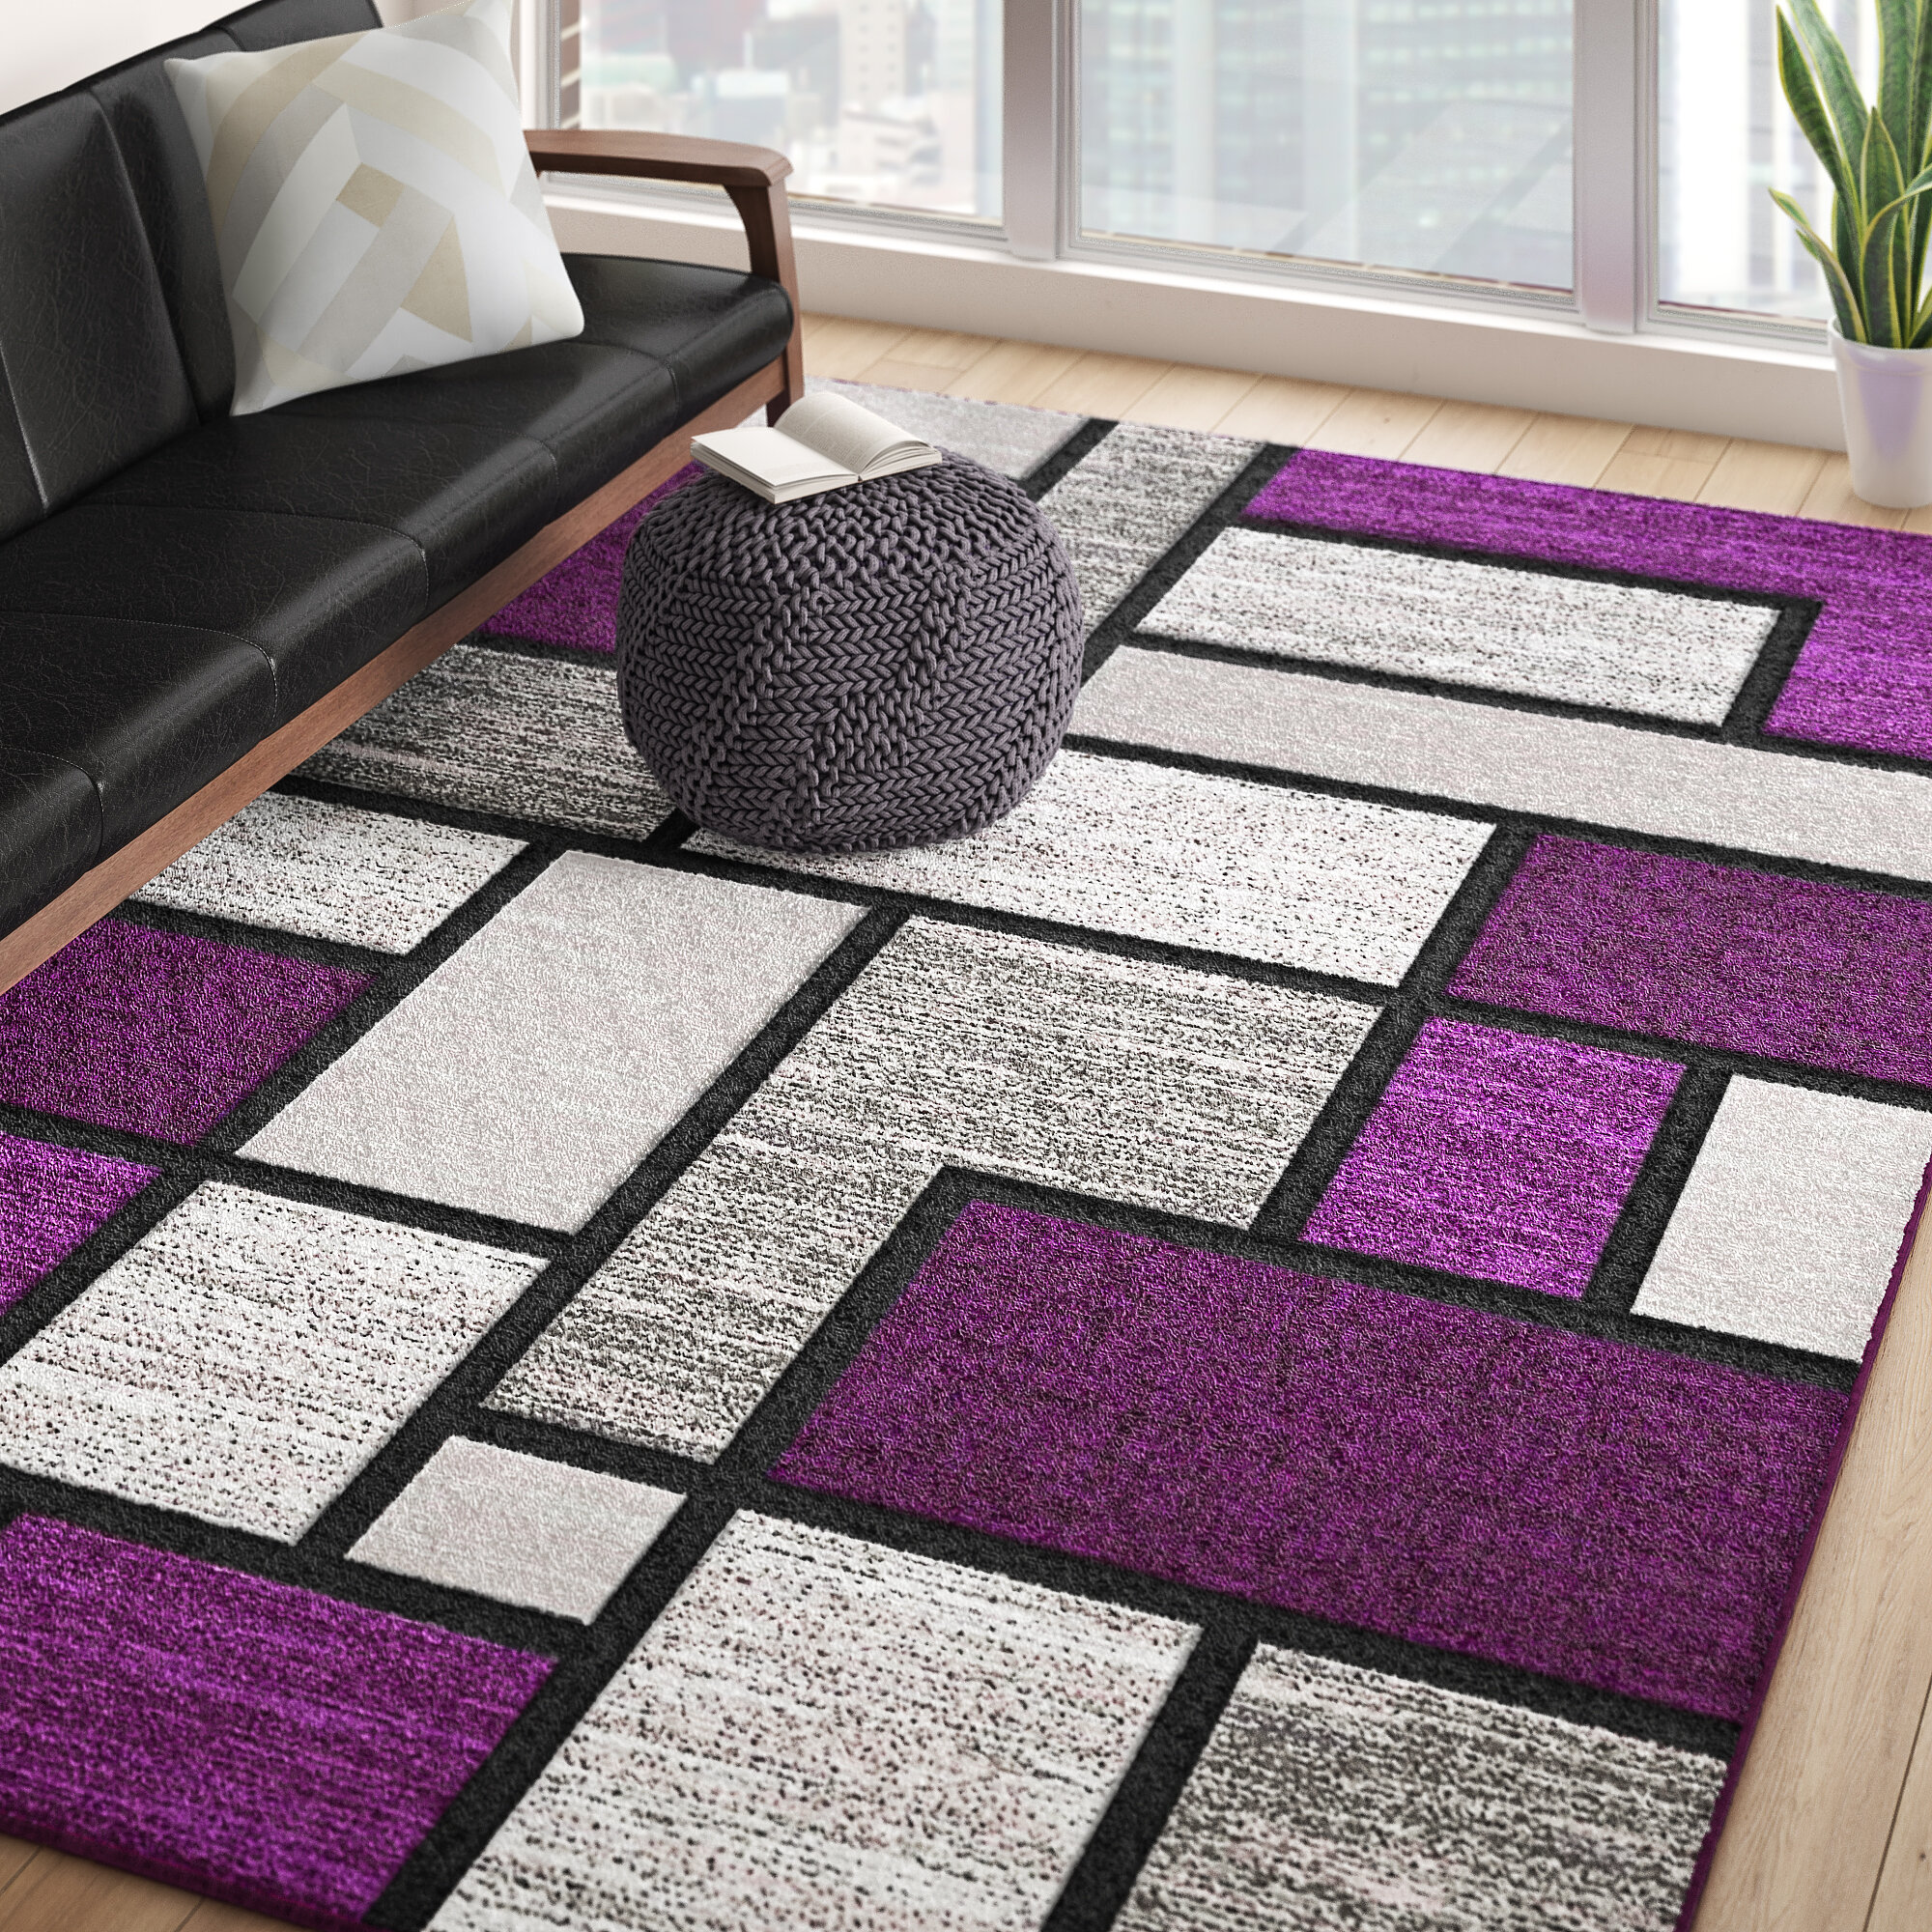 Pink Purple Area Rugs You Ll Love In 2021 Wayfair